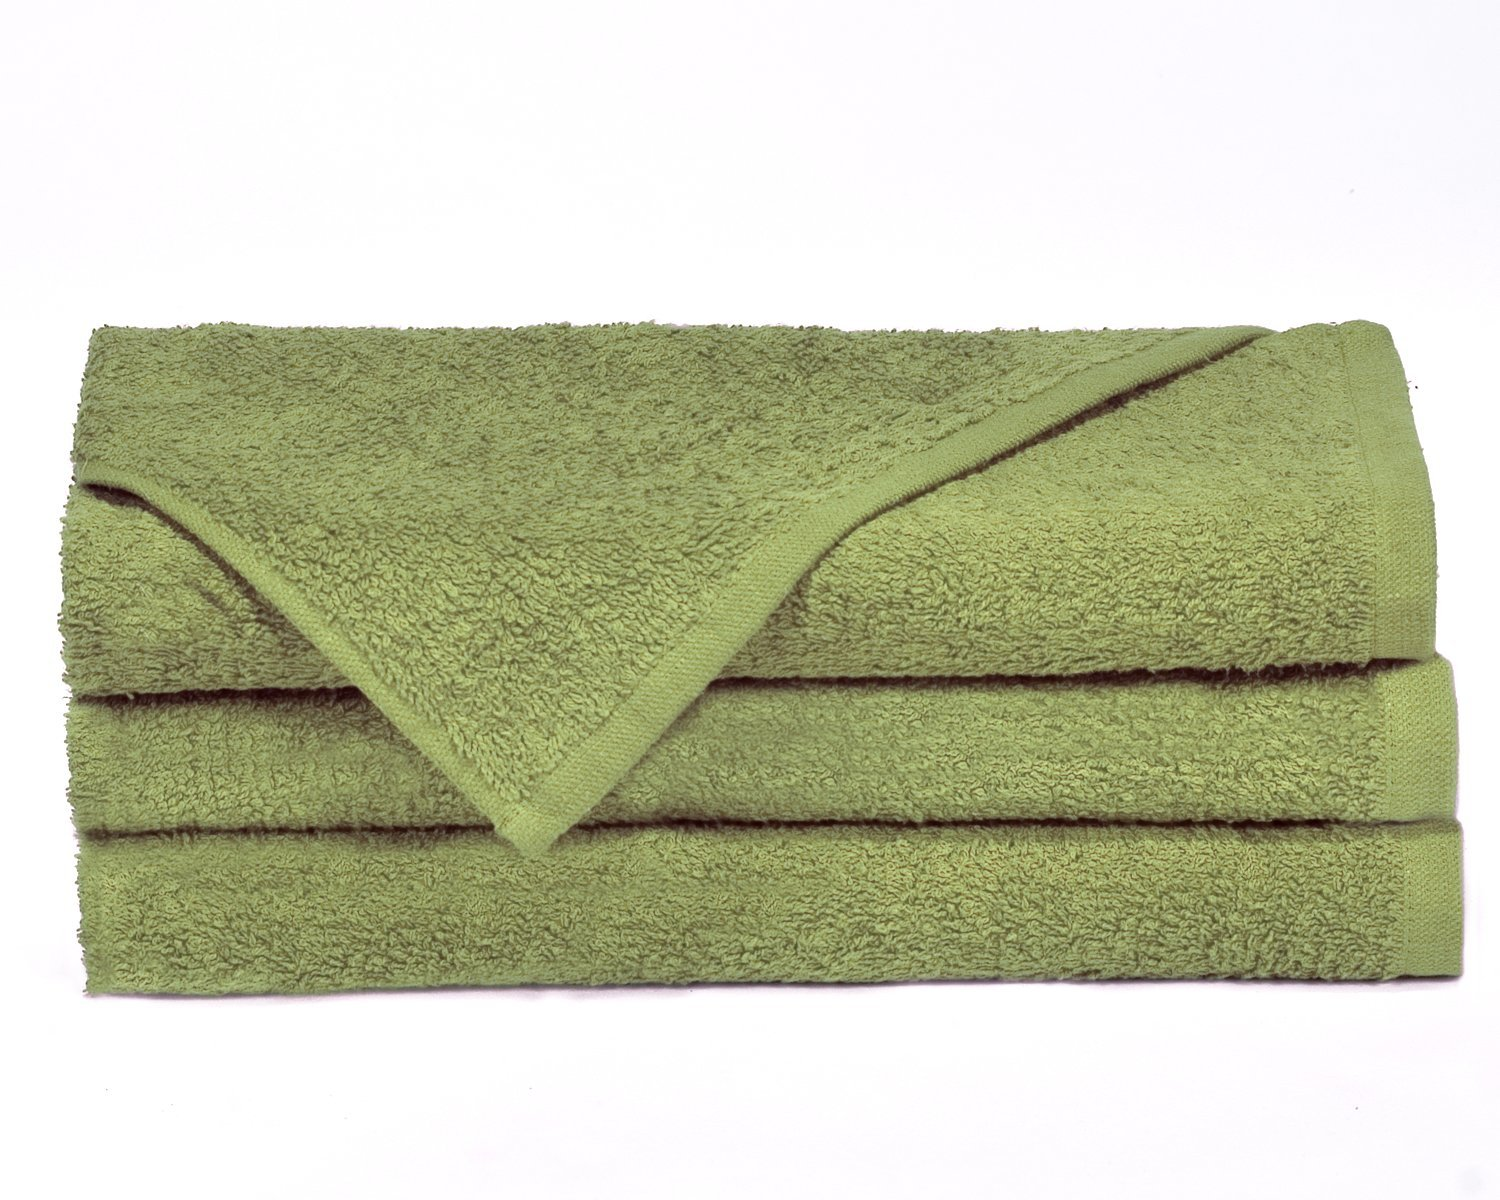 Towels by Doctor Joe Think Thick Sage Green 16 x 27 Super Absorbent Car Wash and Detailing Towel Pack of 12 DJT1600-G